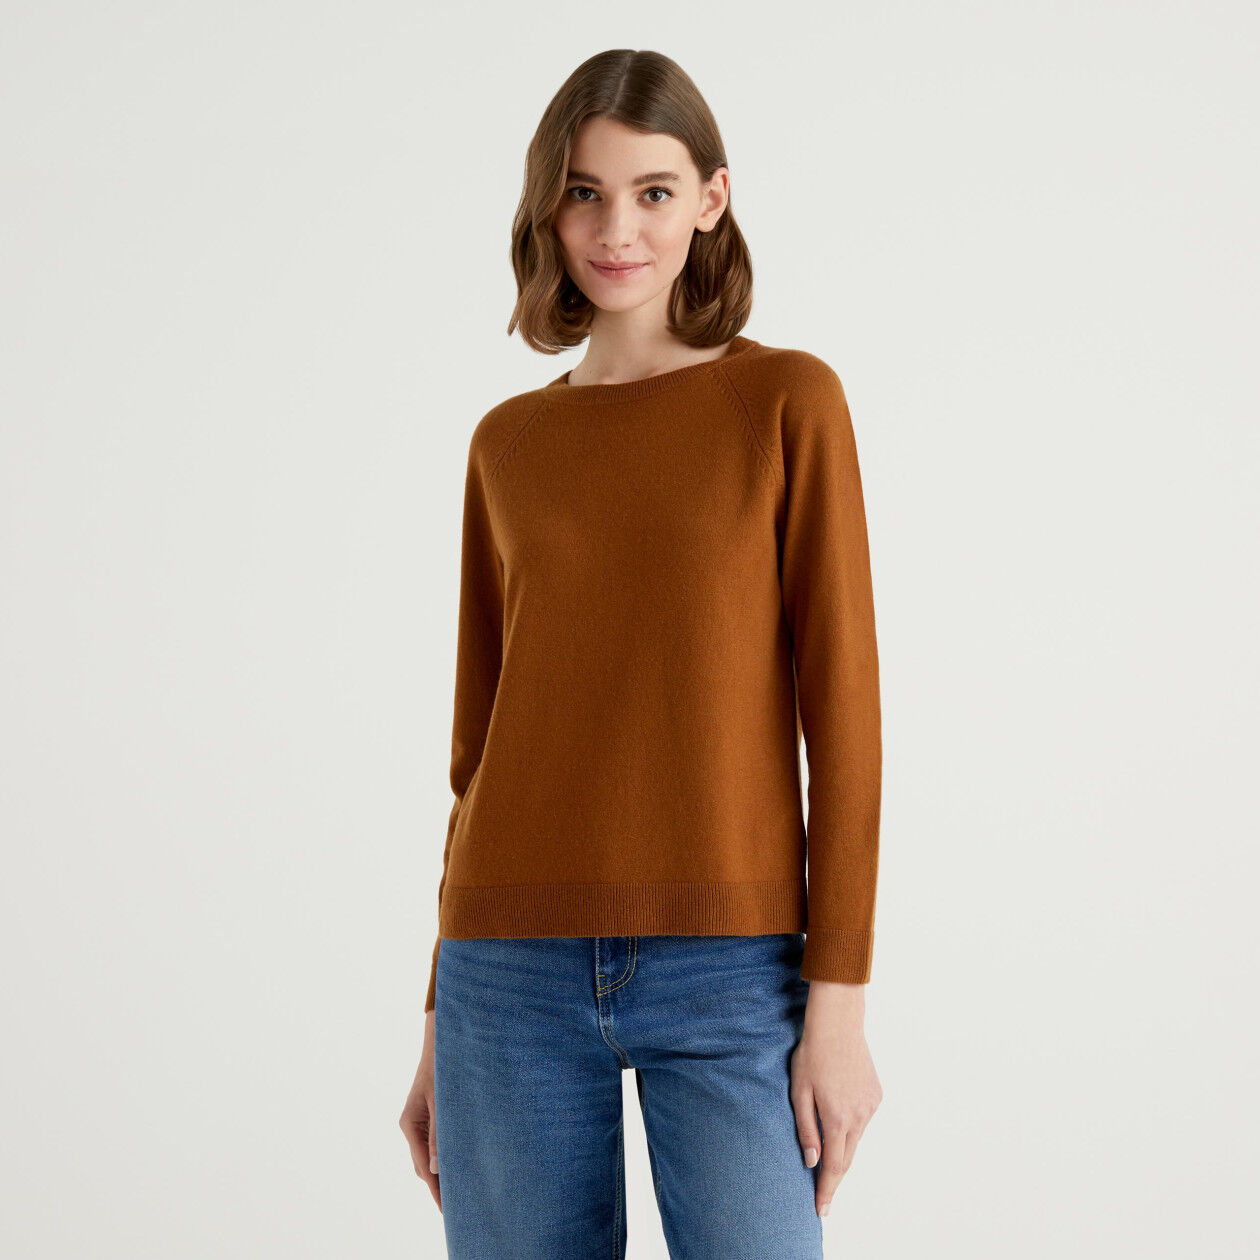 Brown crew neck sweater in cashmere and wool blend